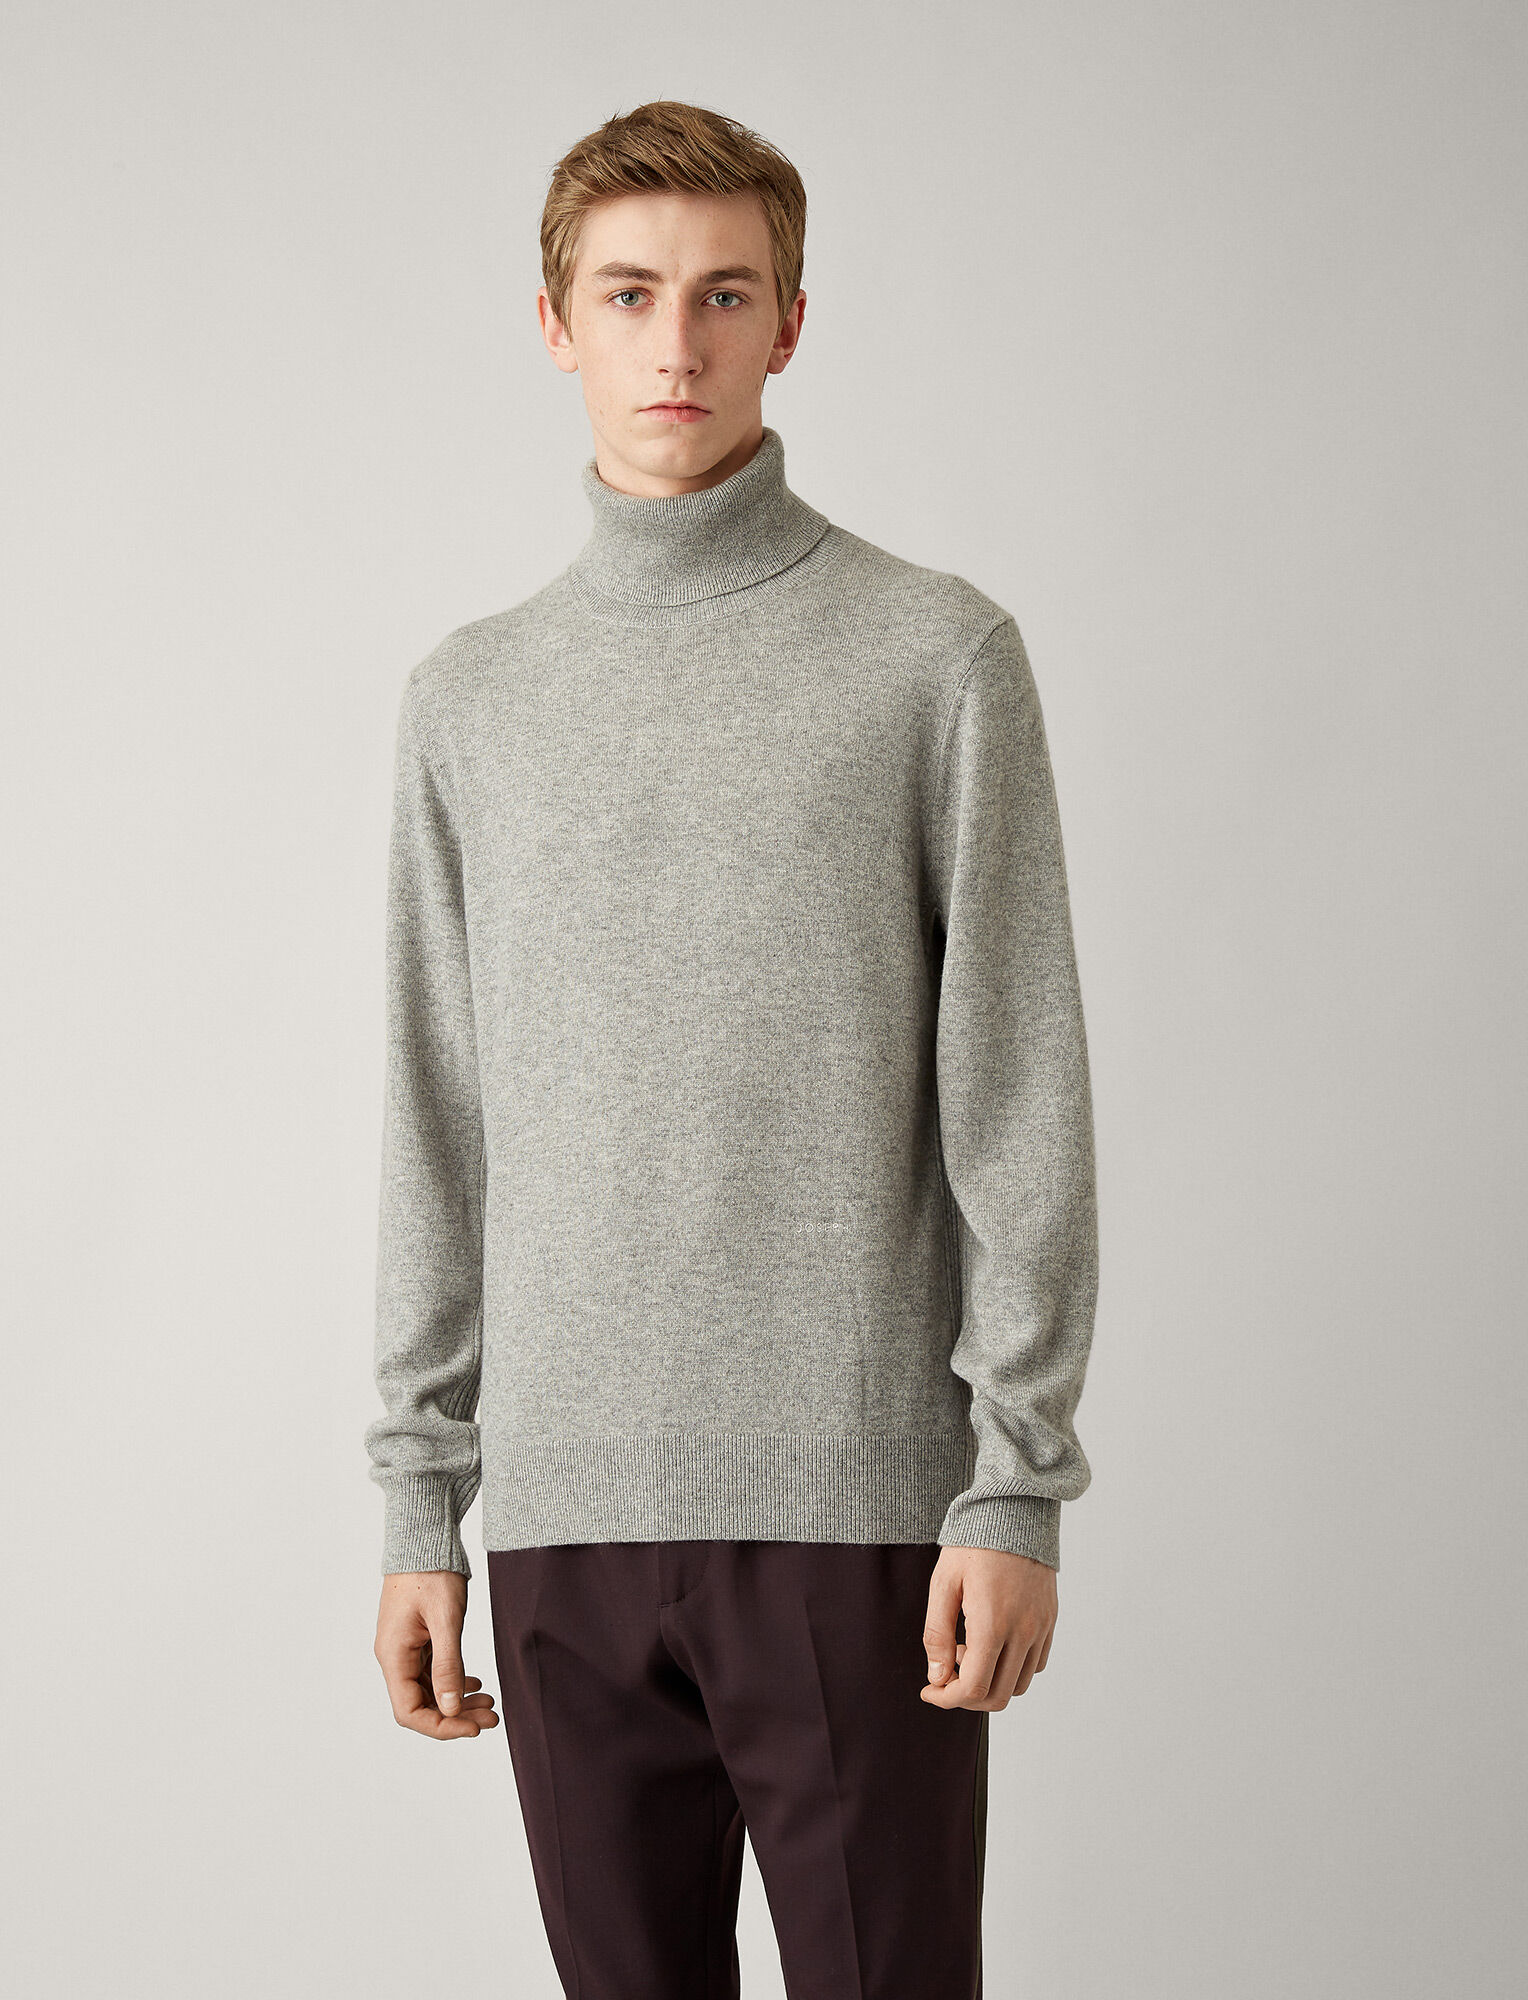 Joseph, High Neck Mongolian Cashmere Knit, in GREY CHINE